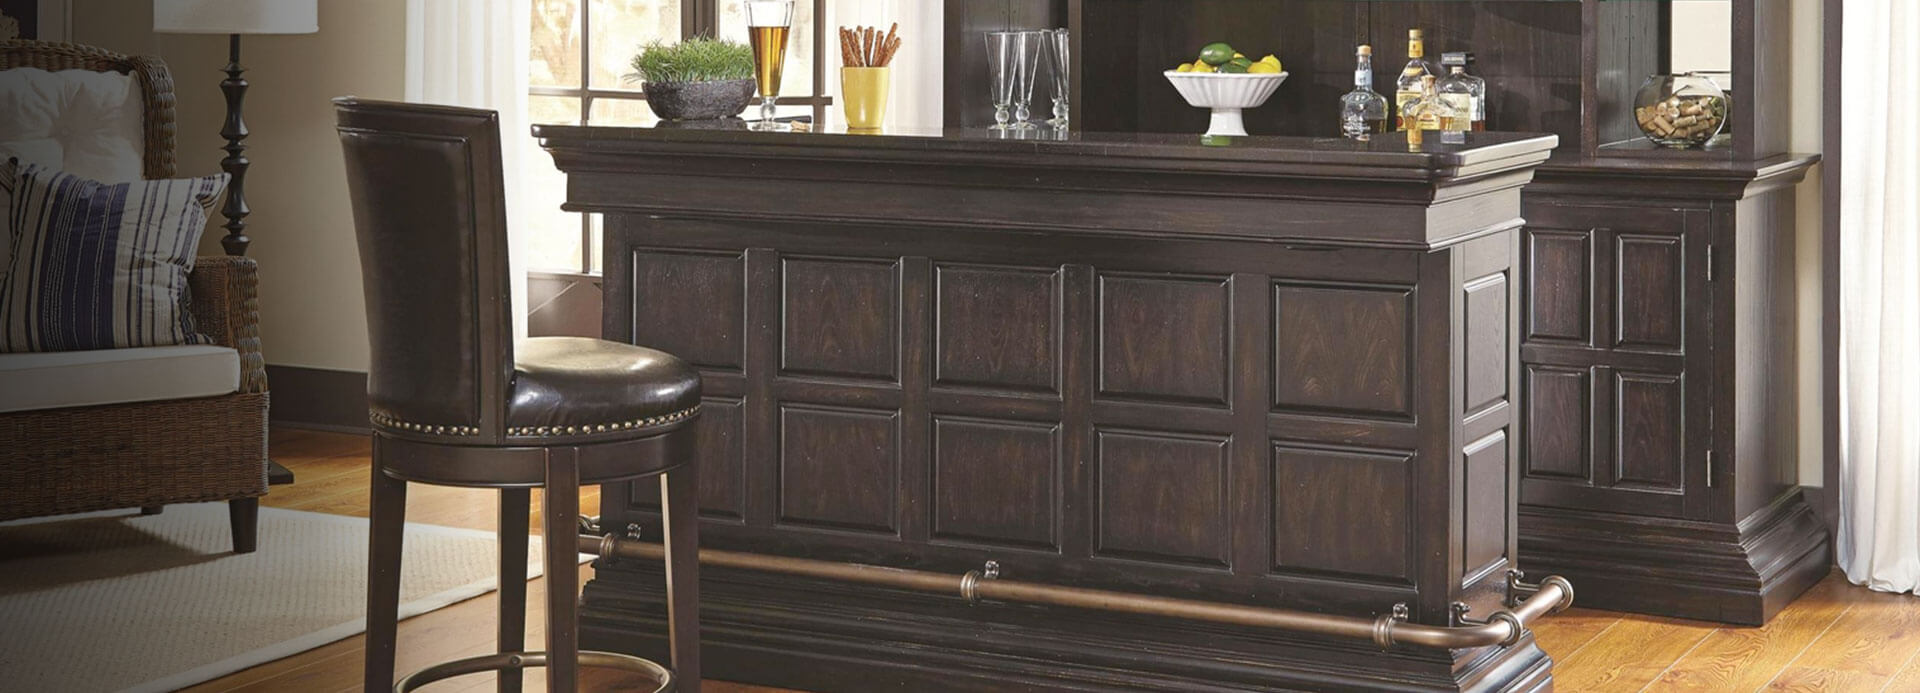 Home bar furniture - Bars for house ...